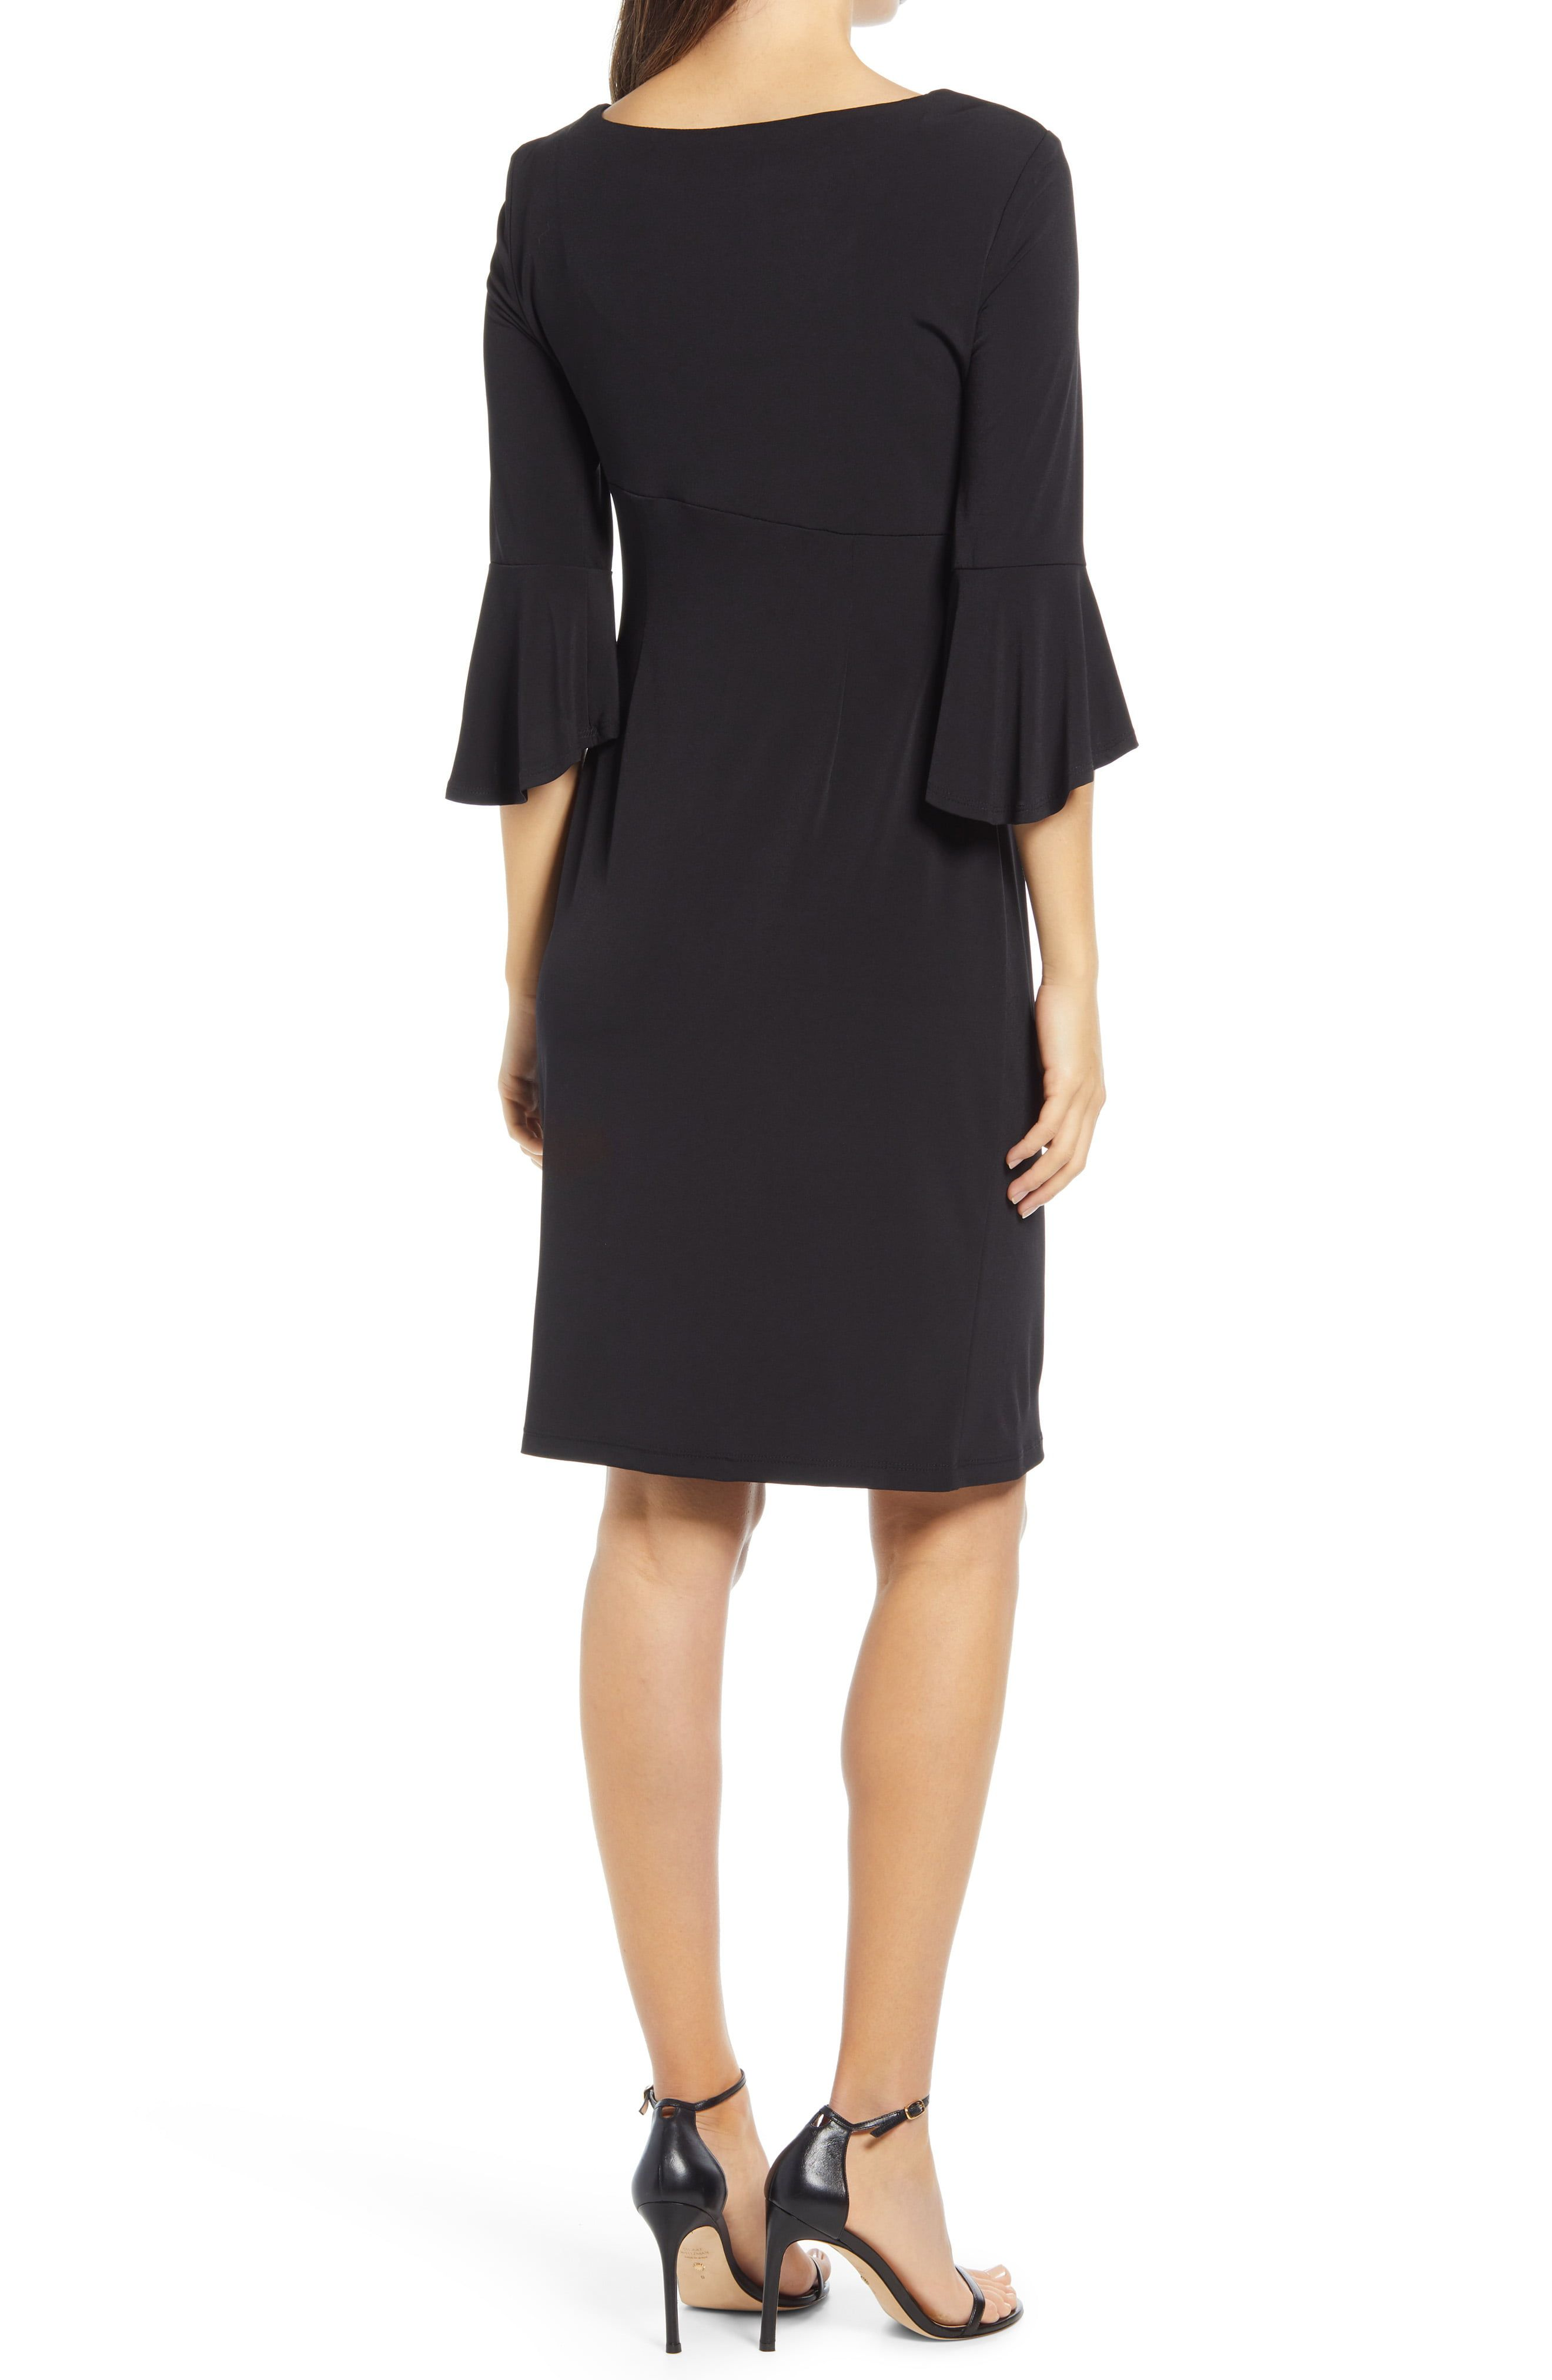 Connected Apparel Pleat Jersey Dress Nordstrom In 2021 Connected Apparel Figure Flattering Dresses Jersey Dress [ 4048 x 2640 Pixel ]